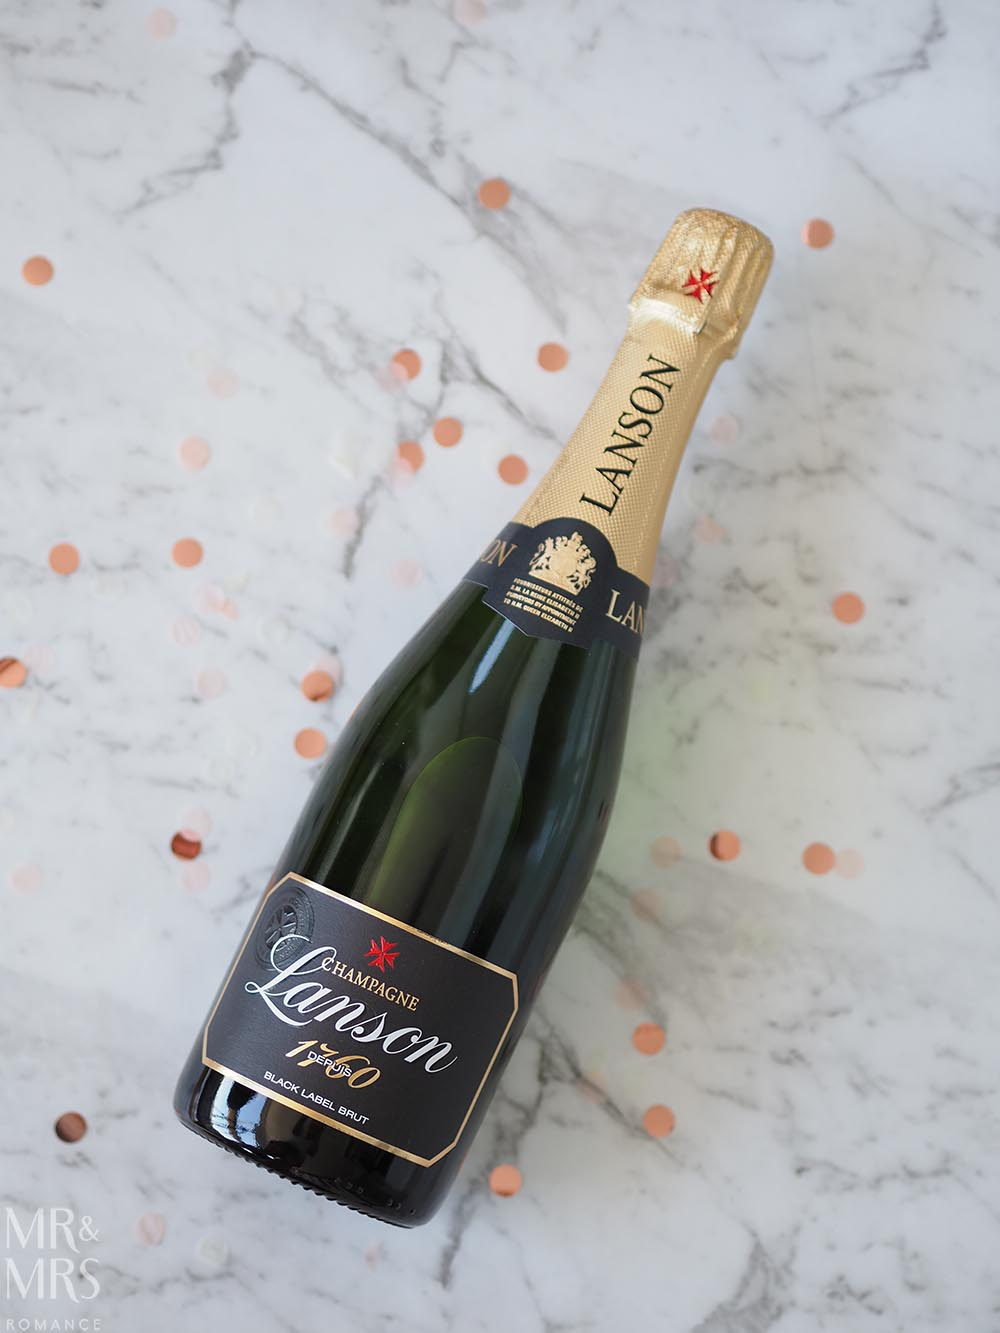 Last-minute Christmas gifts - Lanson Champagne